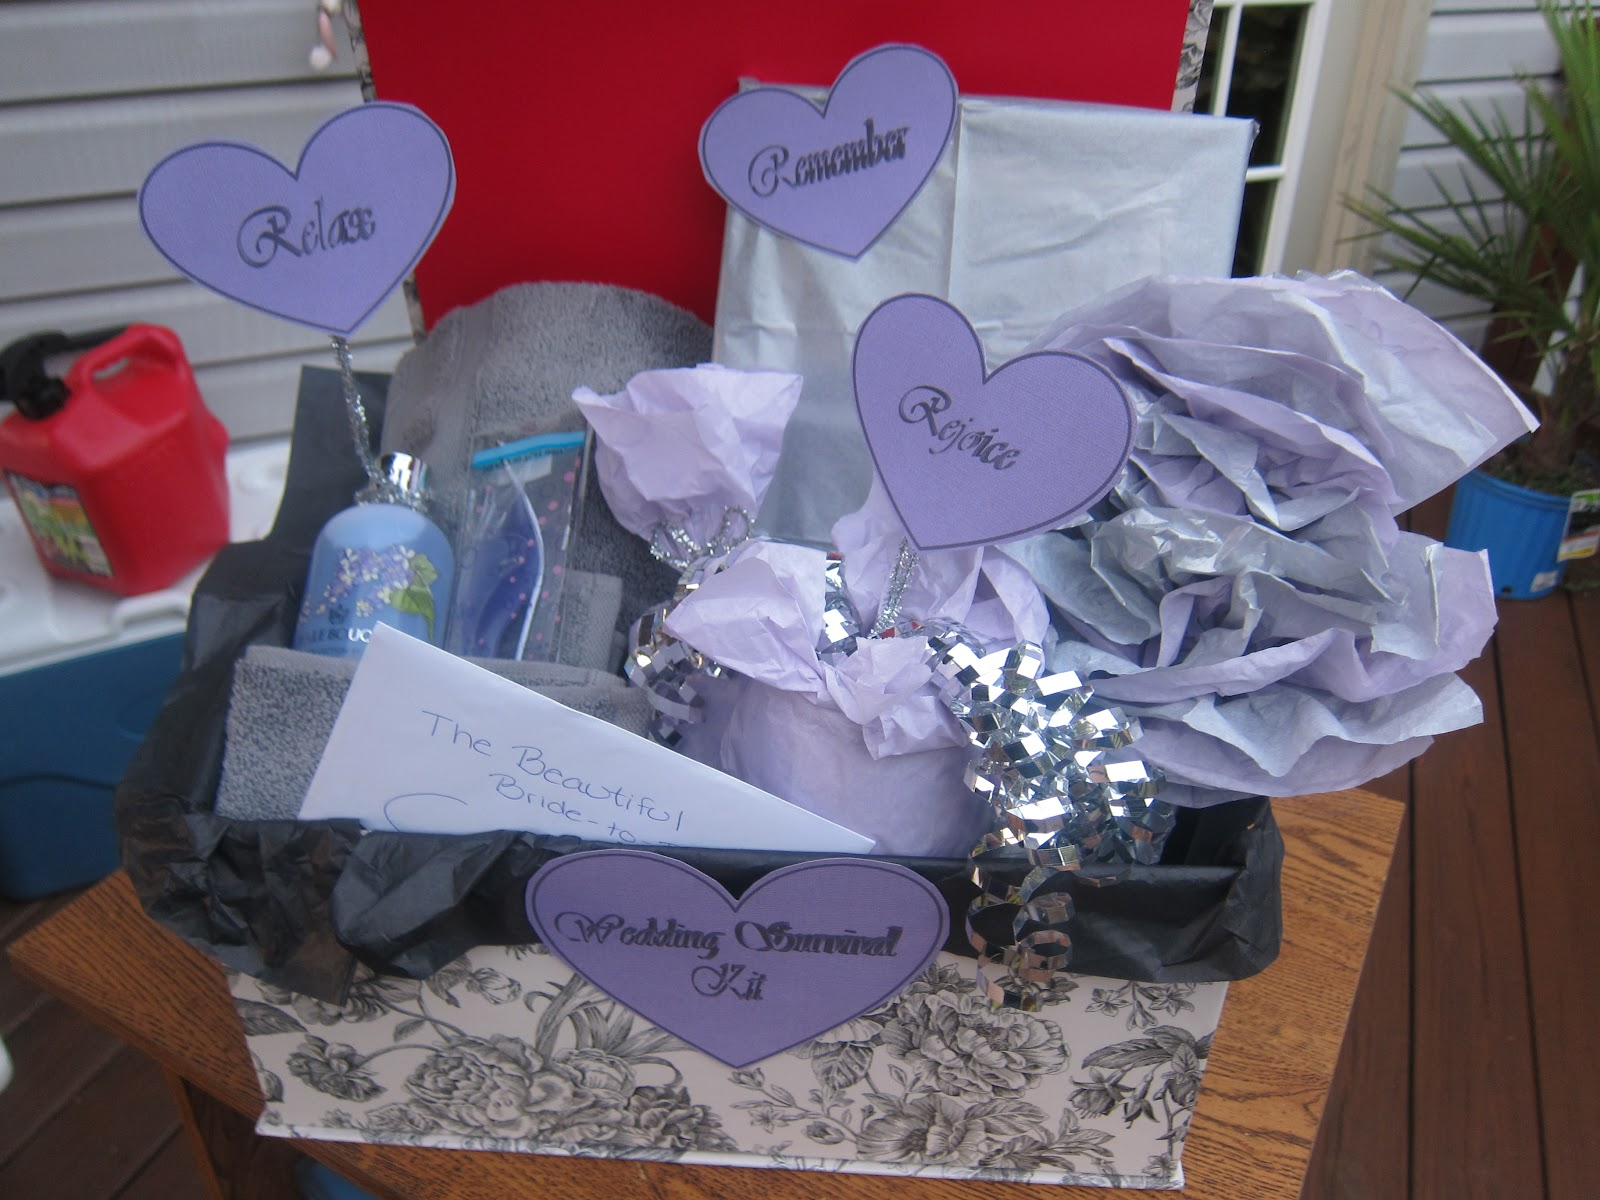 Wedding Shower Gift For My Best Friend : The gift was a big hit at the party, people asked me if I had made the ...